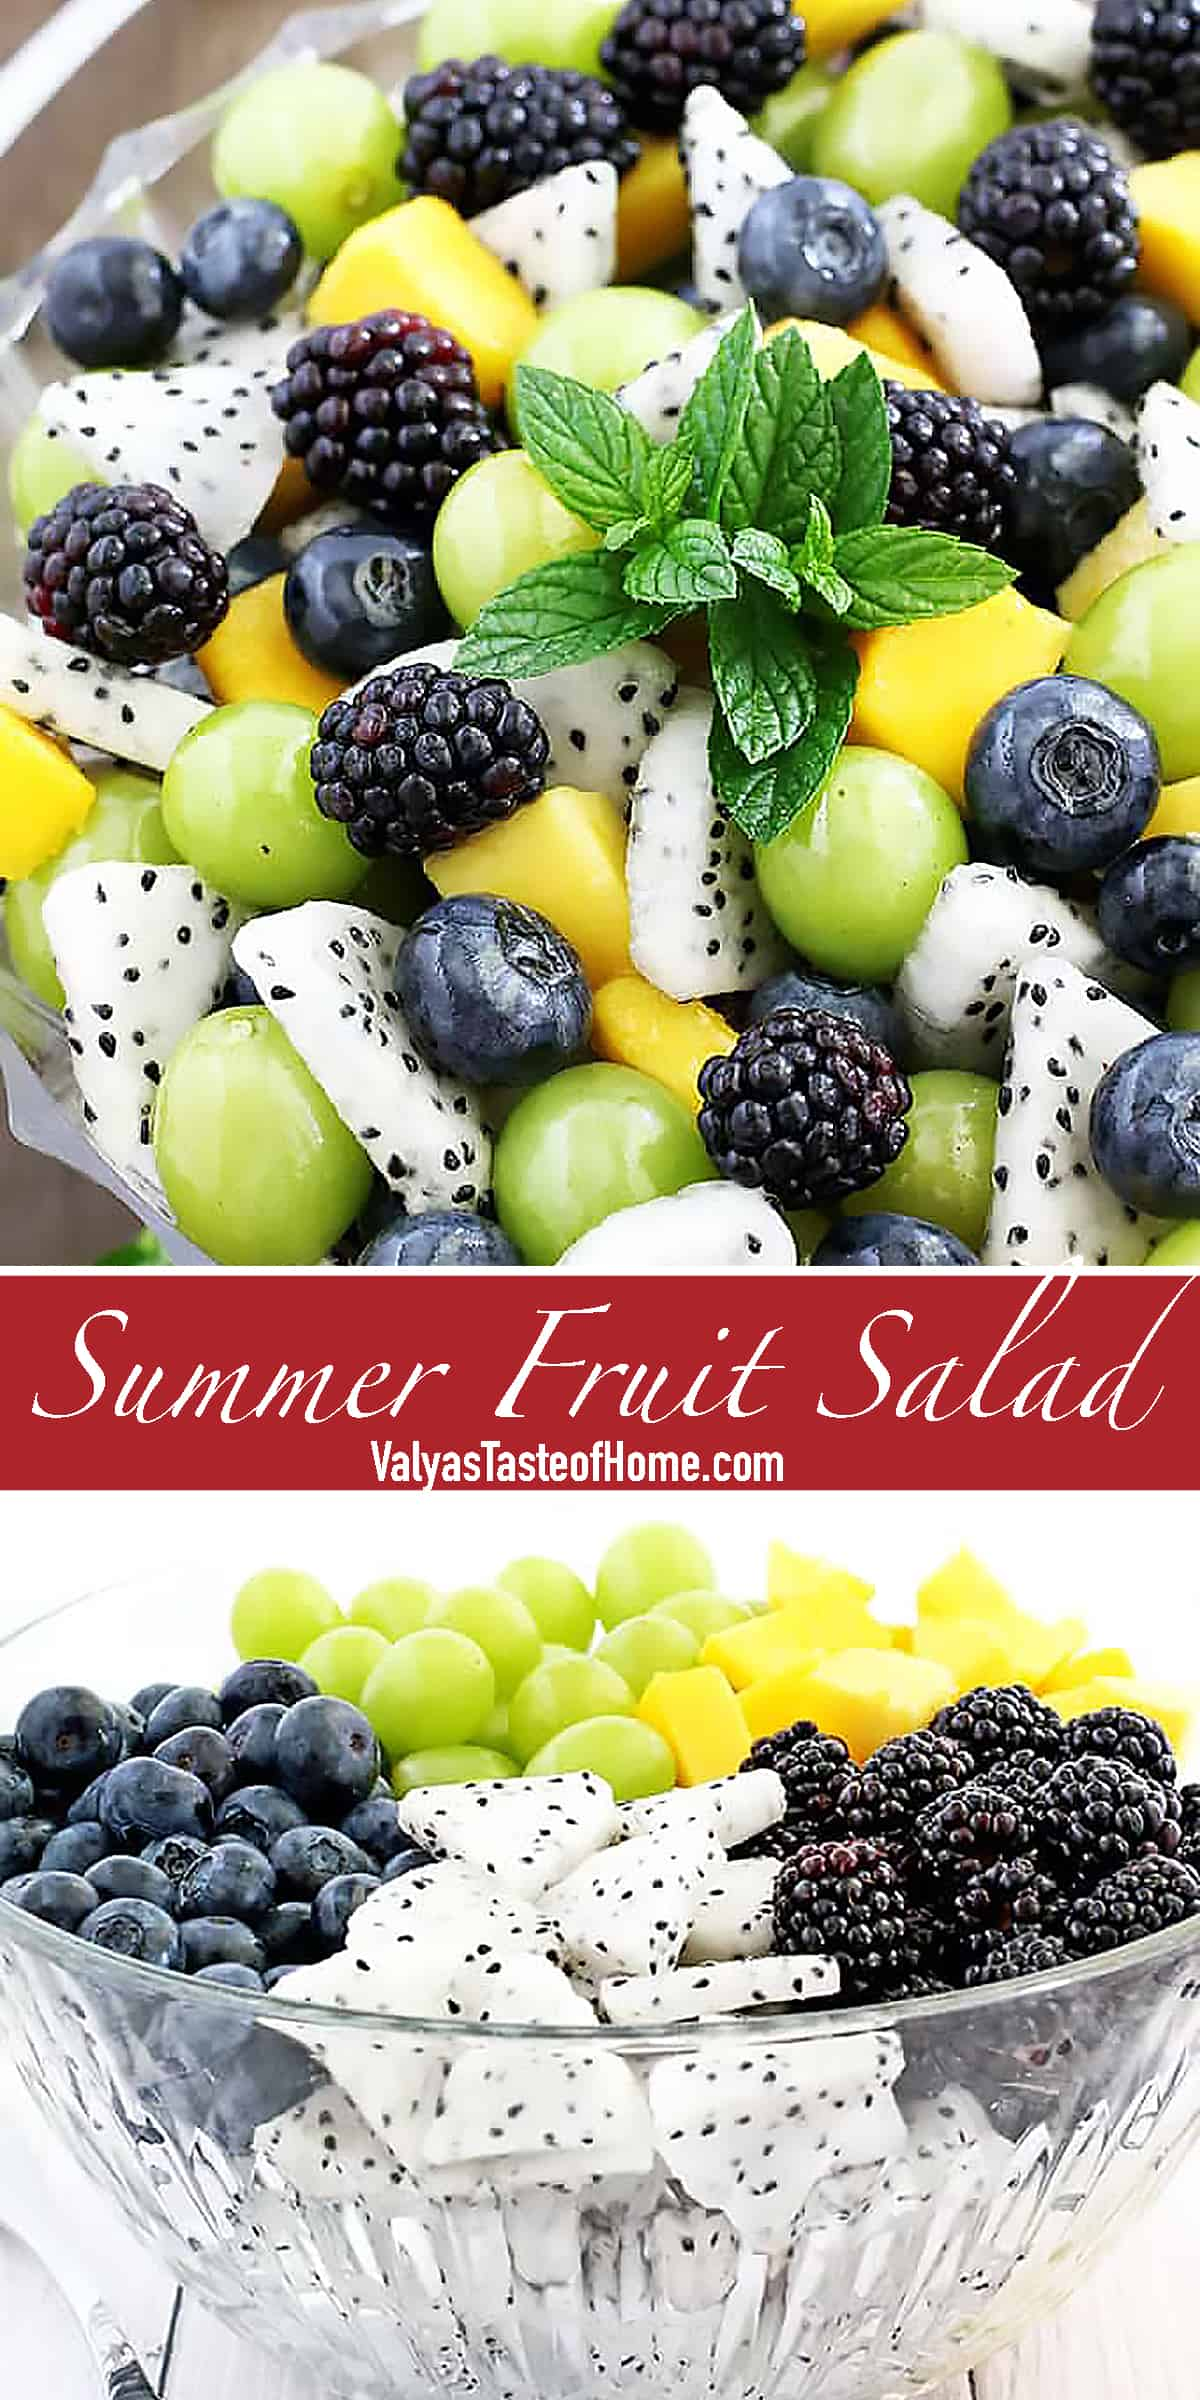 his refreshing and crowd-pleasing Summer Fruit Salad Recipe is a perfect healthy dessert or a snack anytime of the day. Most of the fruits are still in season so let's enjoy this deliciousness as long as we can. The salad is really easy to put together but is such an attractive addition to your table.